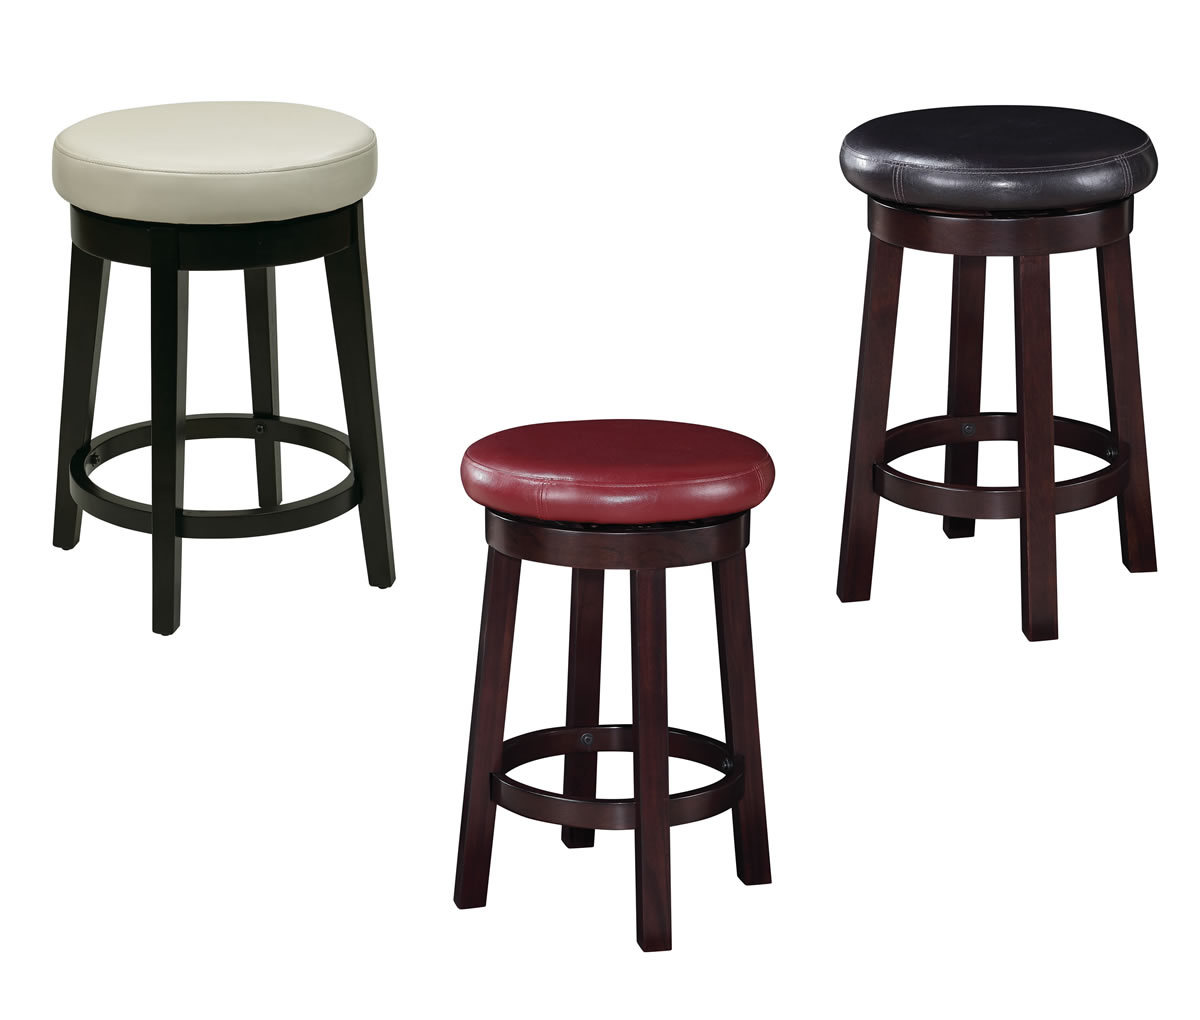 Bar Stool Chair 24 Inch High Seat Round Barstool Faux Leather Wood Stool